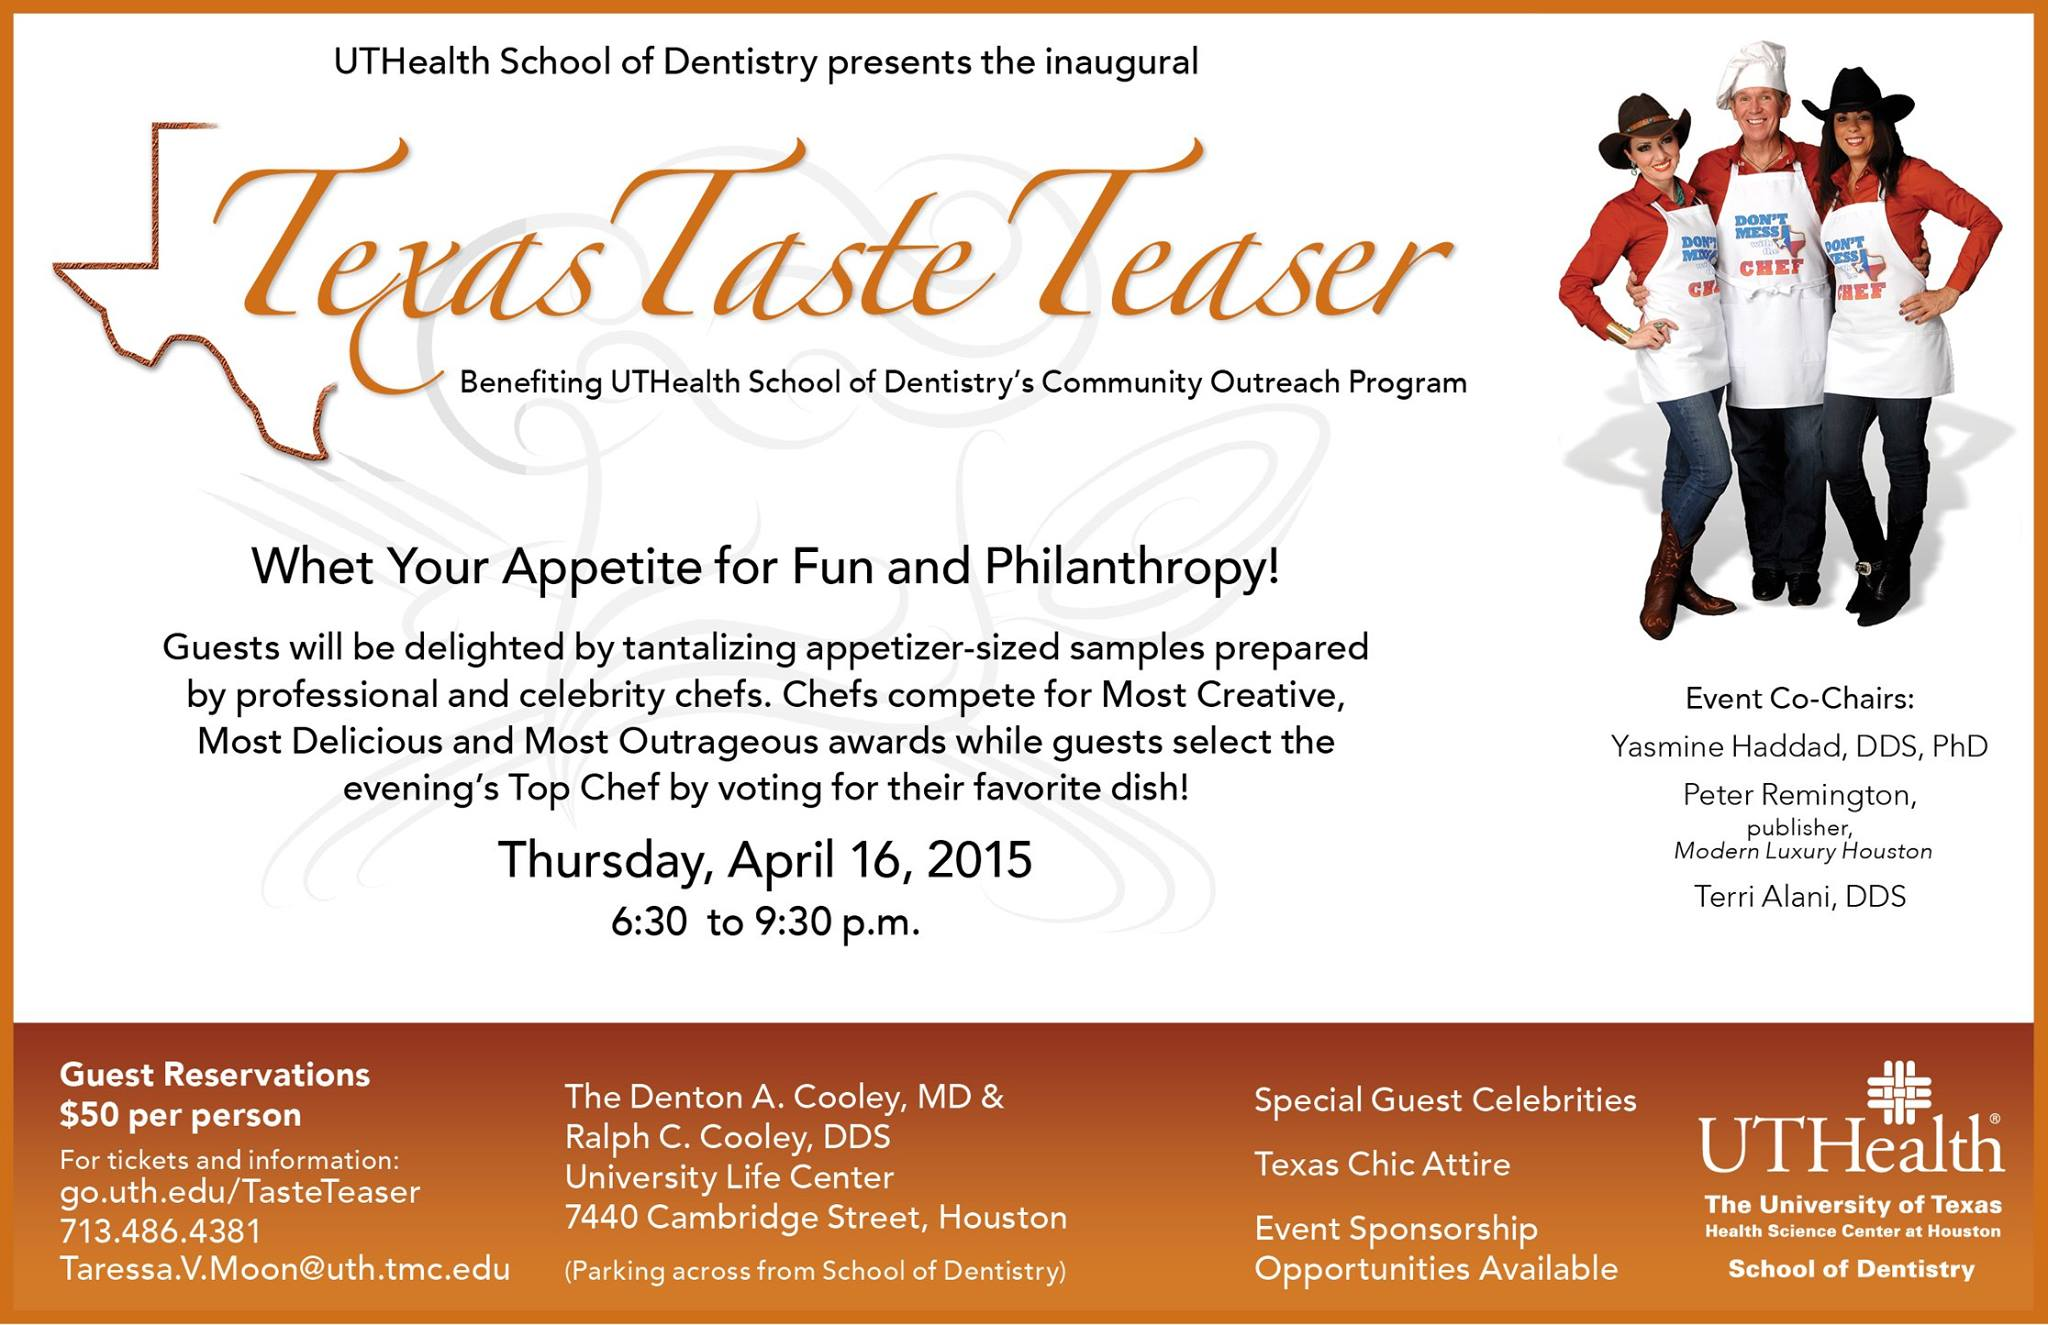 The Texas Taste Teaser - get ready to be STUFFED with different types of cuisines at the first annual Texas Taste Teaserhosted by the University ofTexasSchool of Dentistry April 16, 2015.    Rita will be a celebrity judge tasting over 20 dishes cooked up by professionals and celebrity chefs from the Houston area.